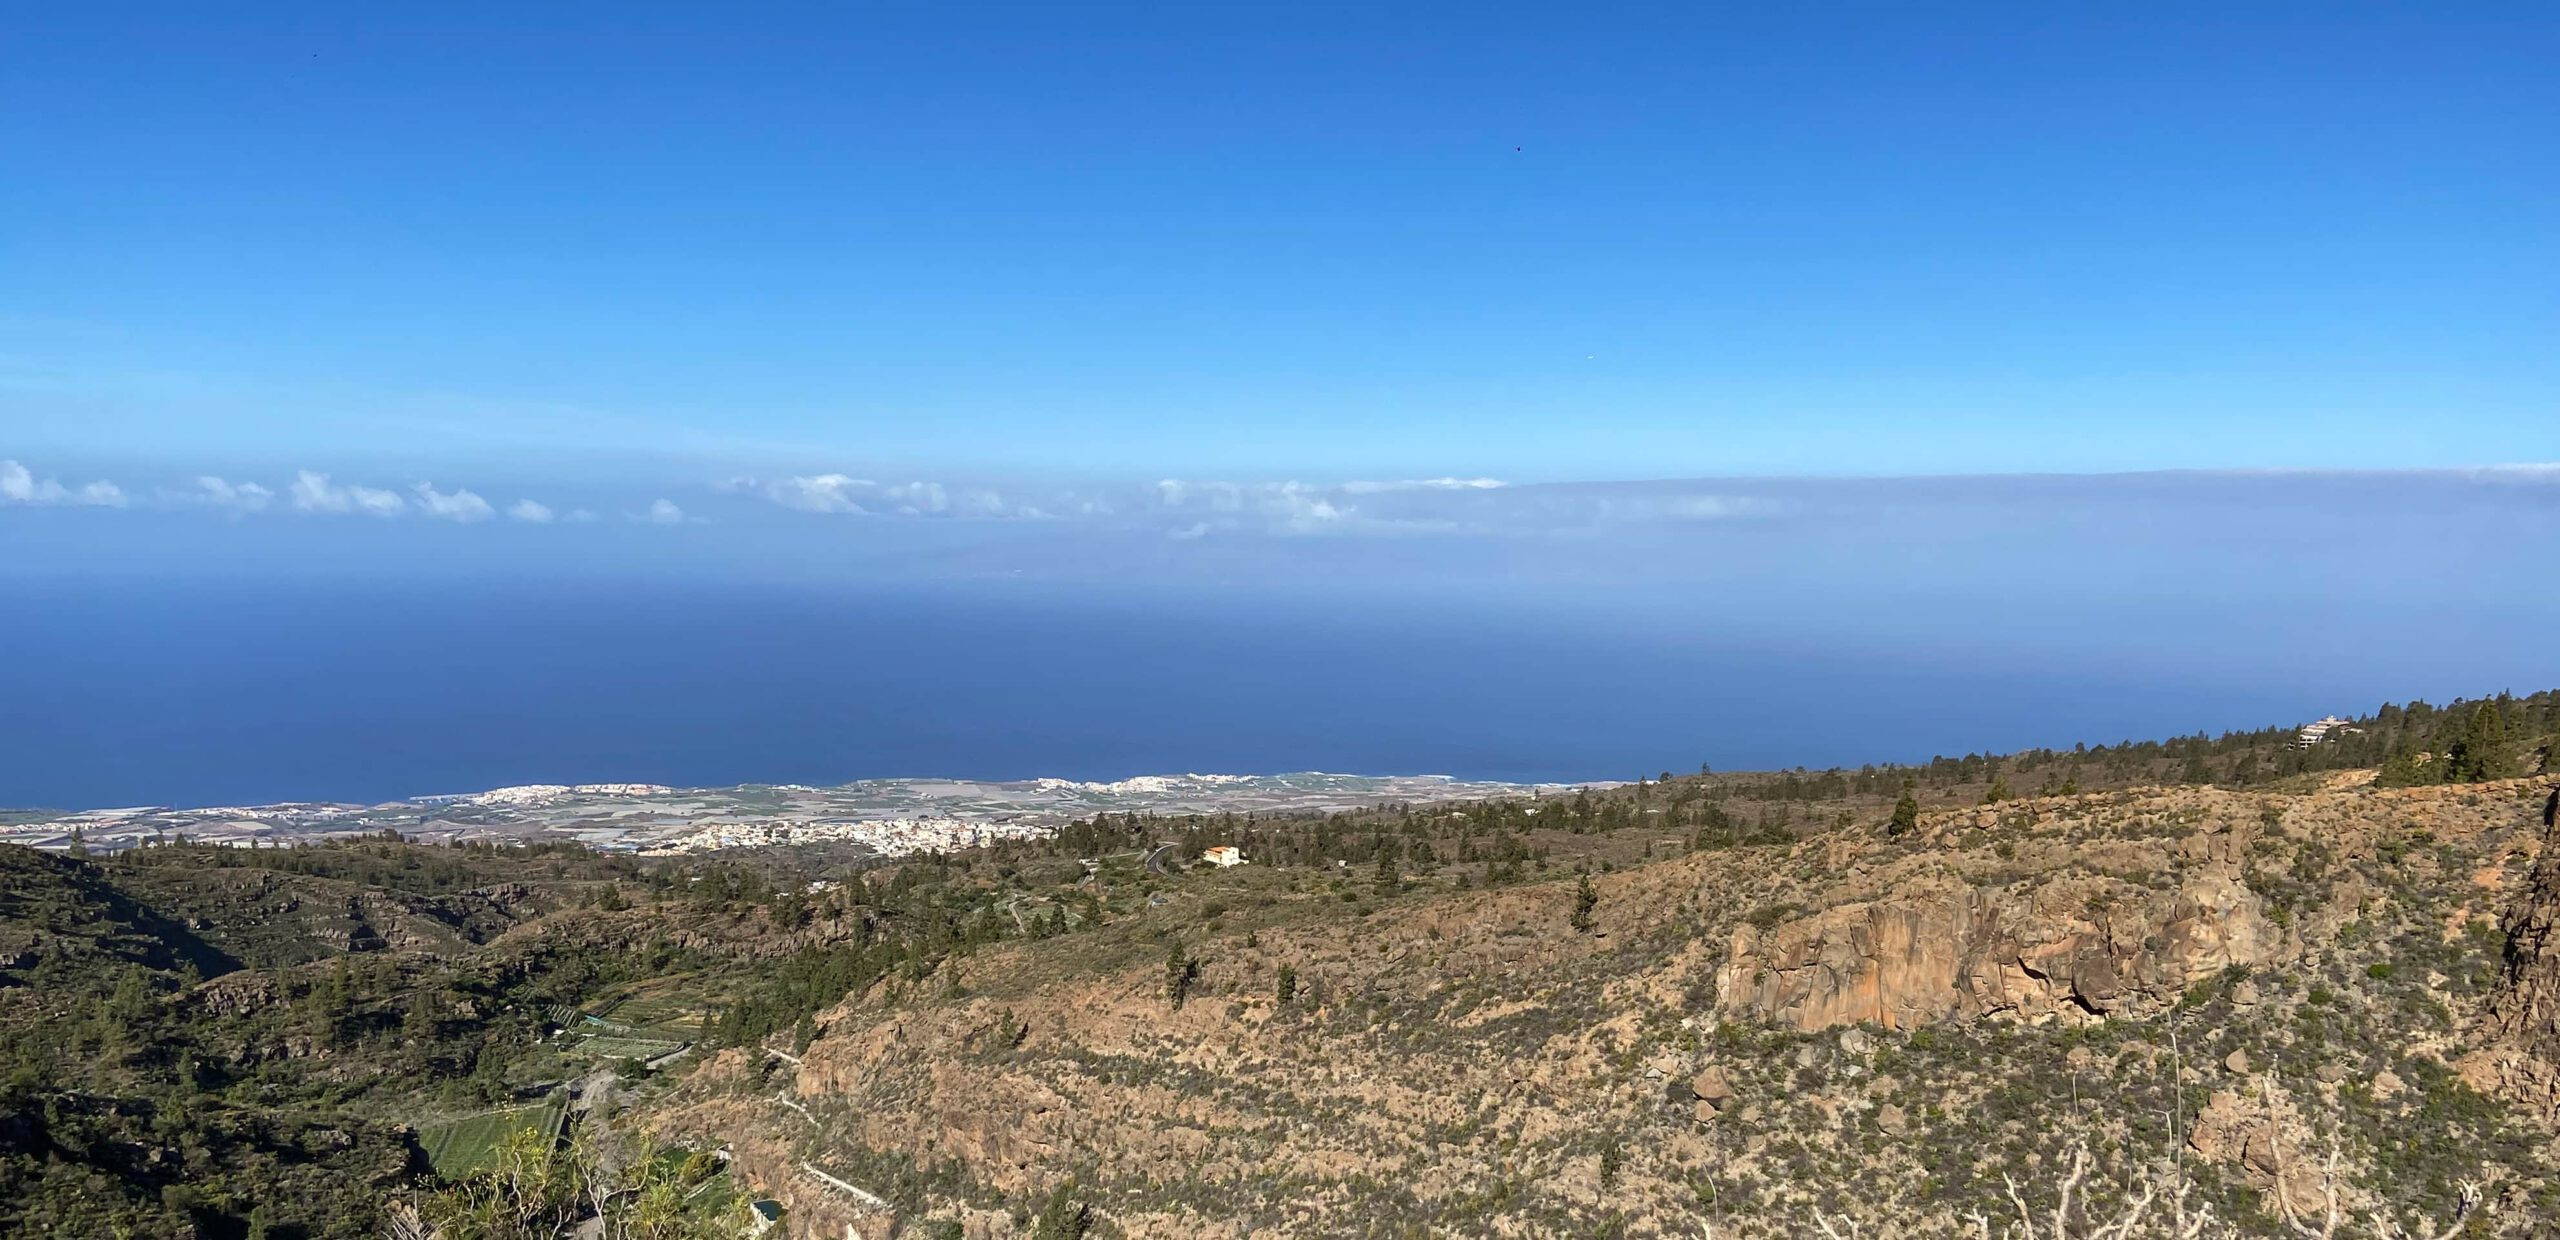 View of the coast and the neighbouring islands of Tenerife from the hiking trail